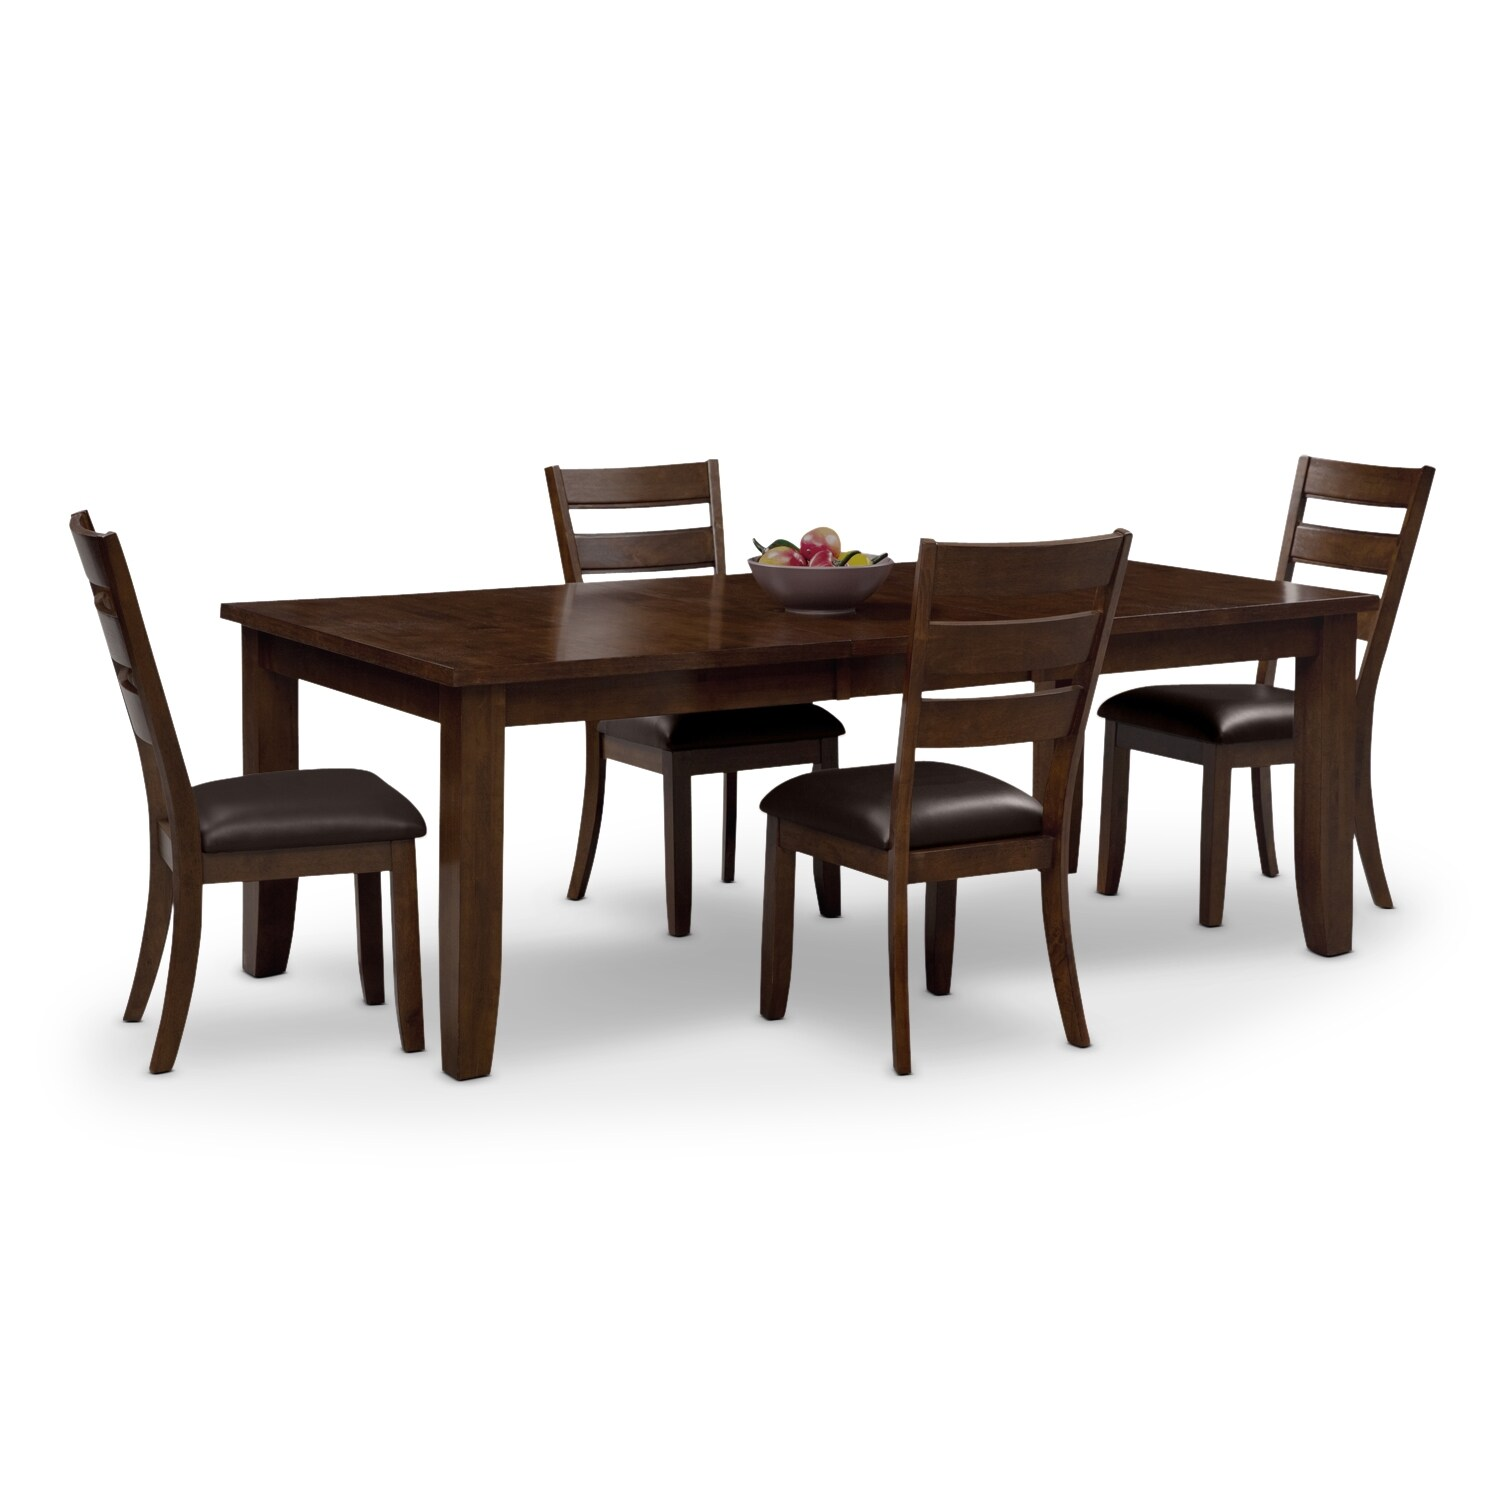 Superieur Dining Room Furniture   Abaco Table And 4 Chairs   Brown